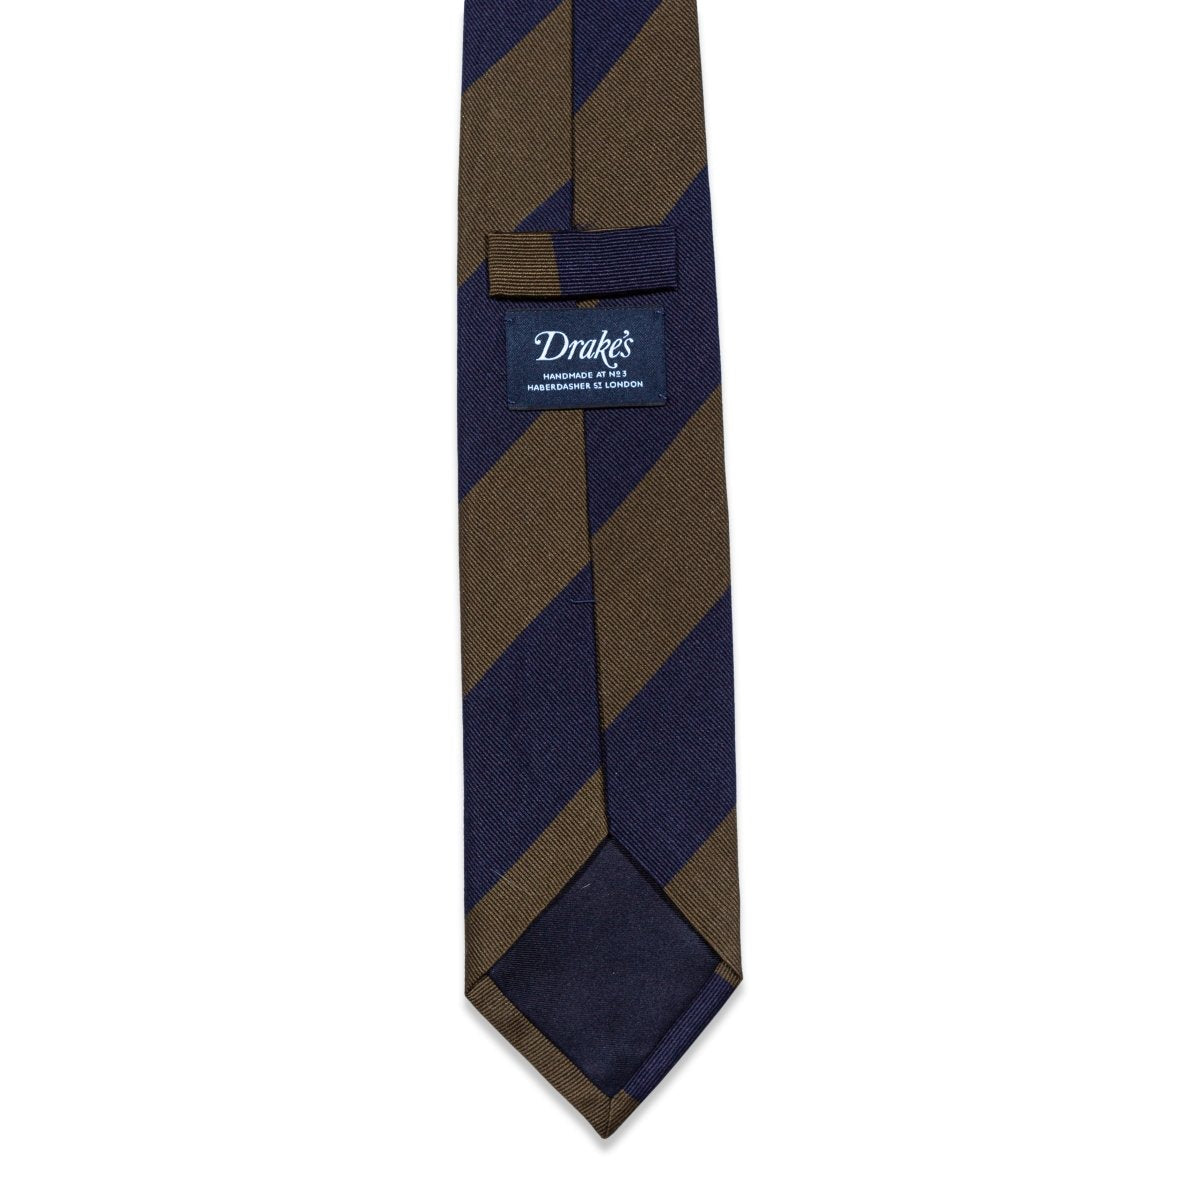 Drake's - Das, Blue & Brown Striped, Dassen | NEW TAILOR Webshop